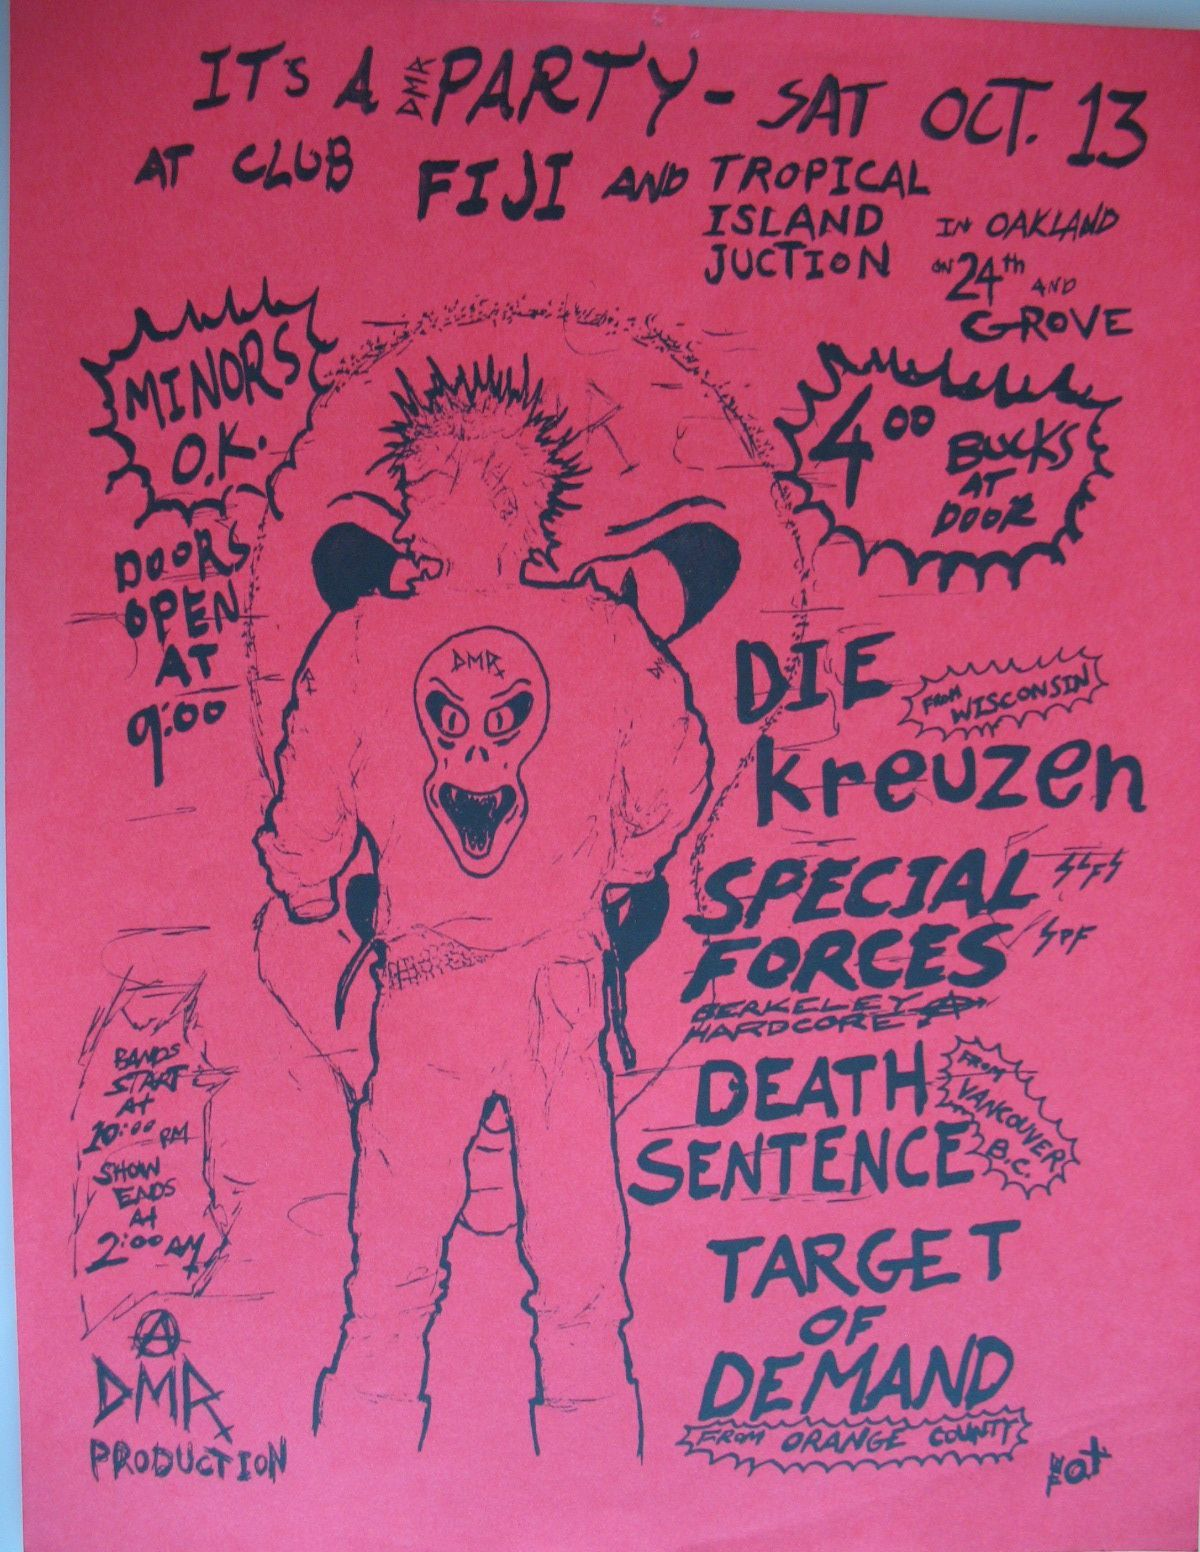 1984-10-13 Club Fiji, Oakland, CA